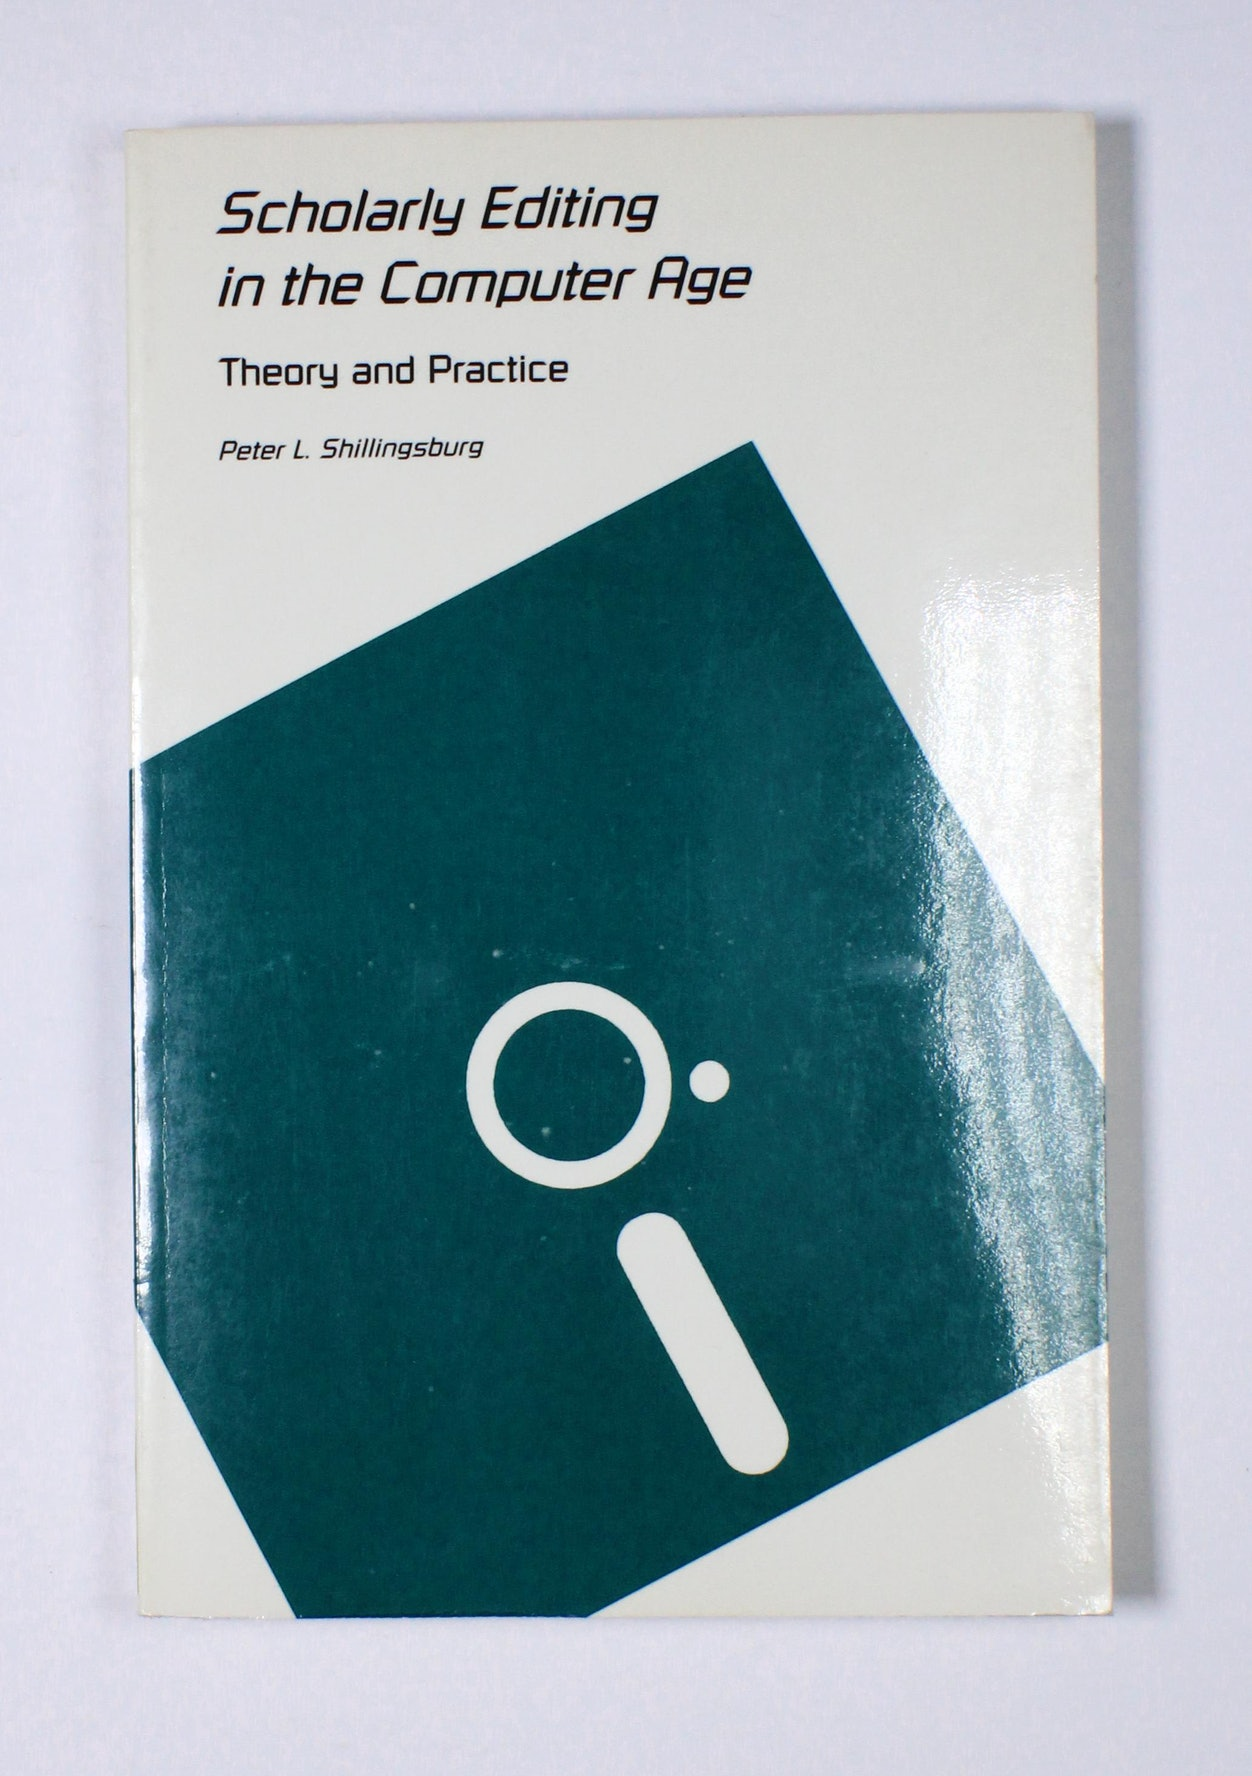 Scholarly Editing in the Computer Age: Theory and Practice